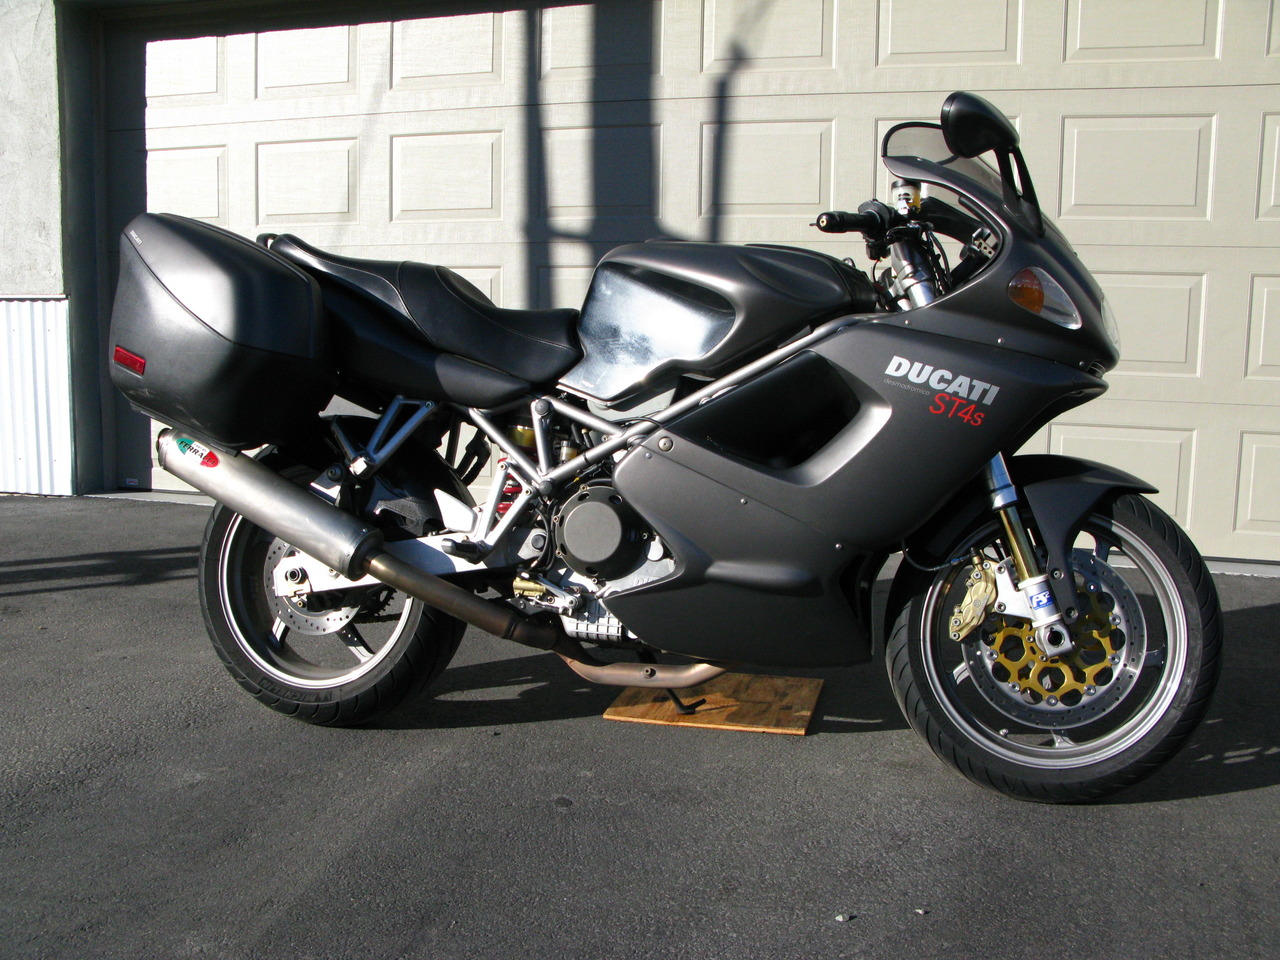 2002 Ducati St 4S, motorcycle listing